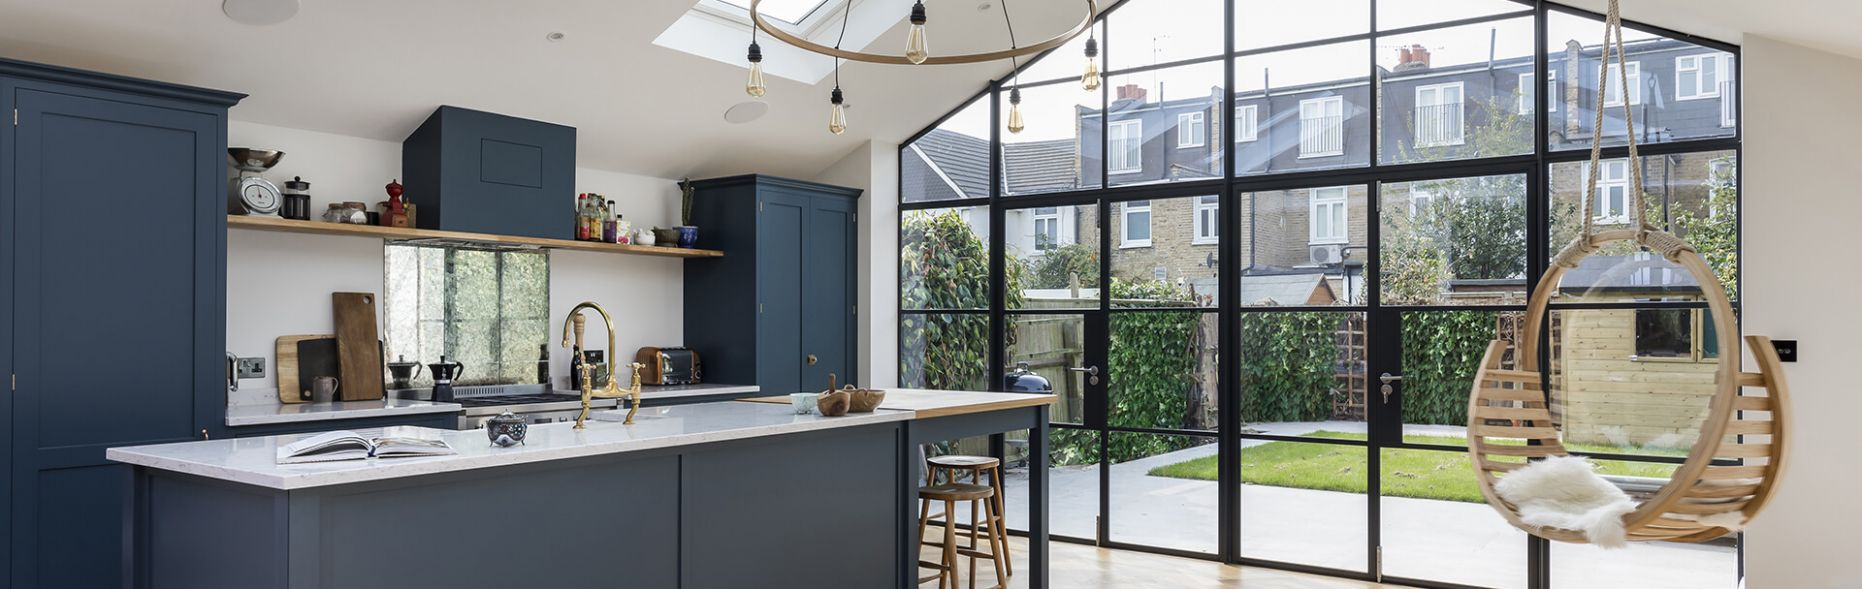 Kitchen Extension Ideas For Semi Detached Houses | Proficiency